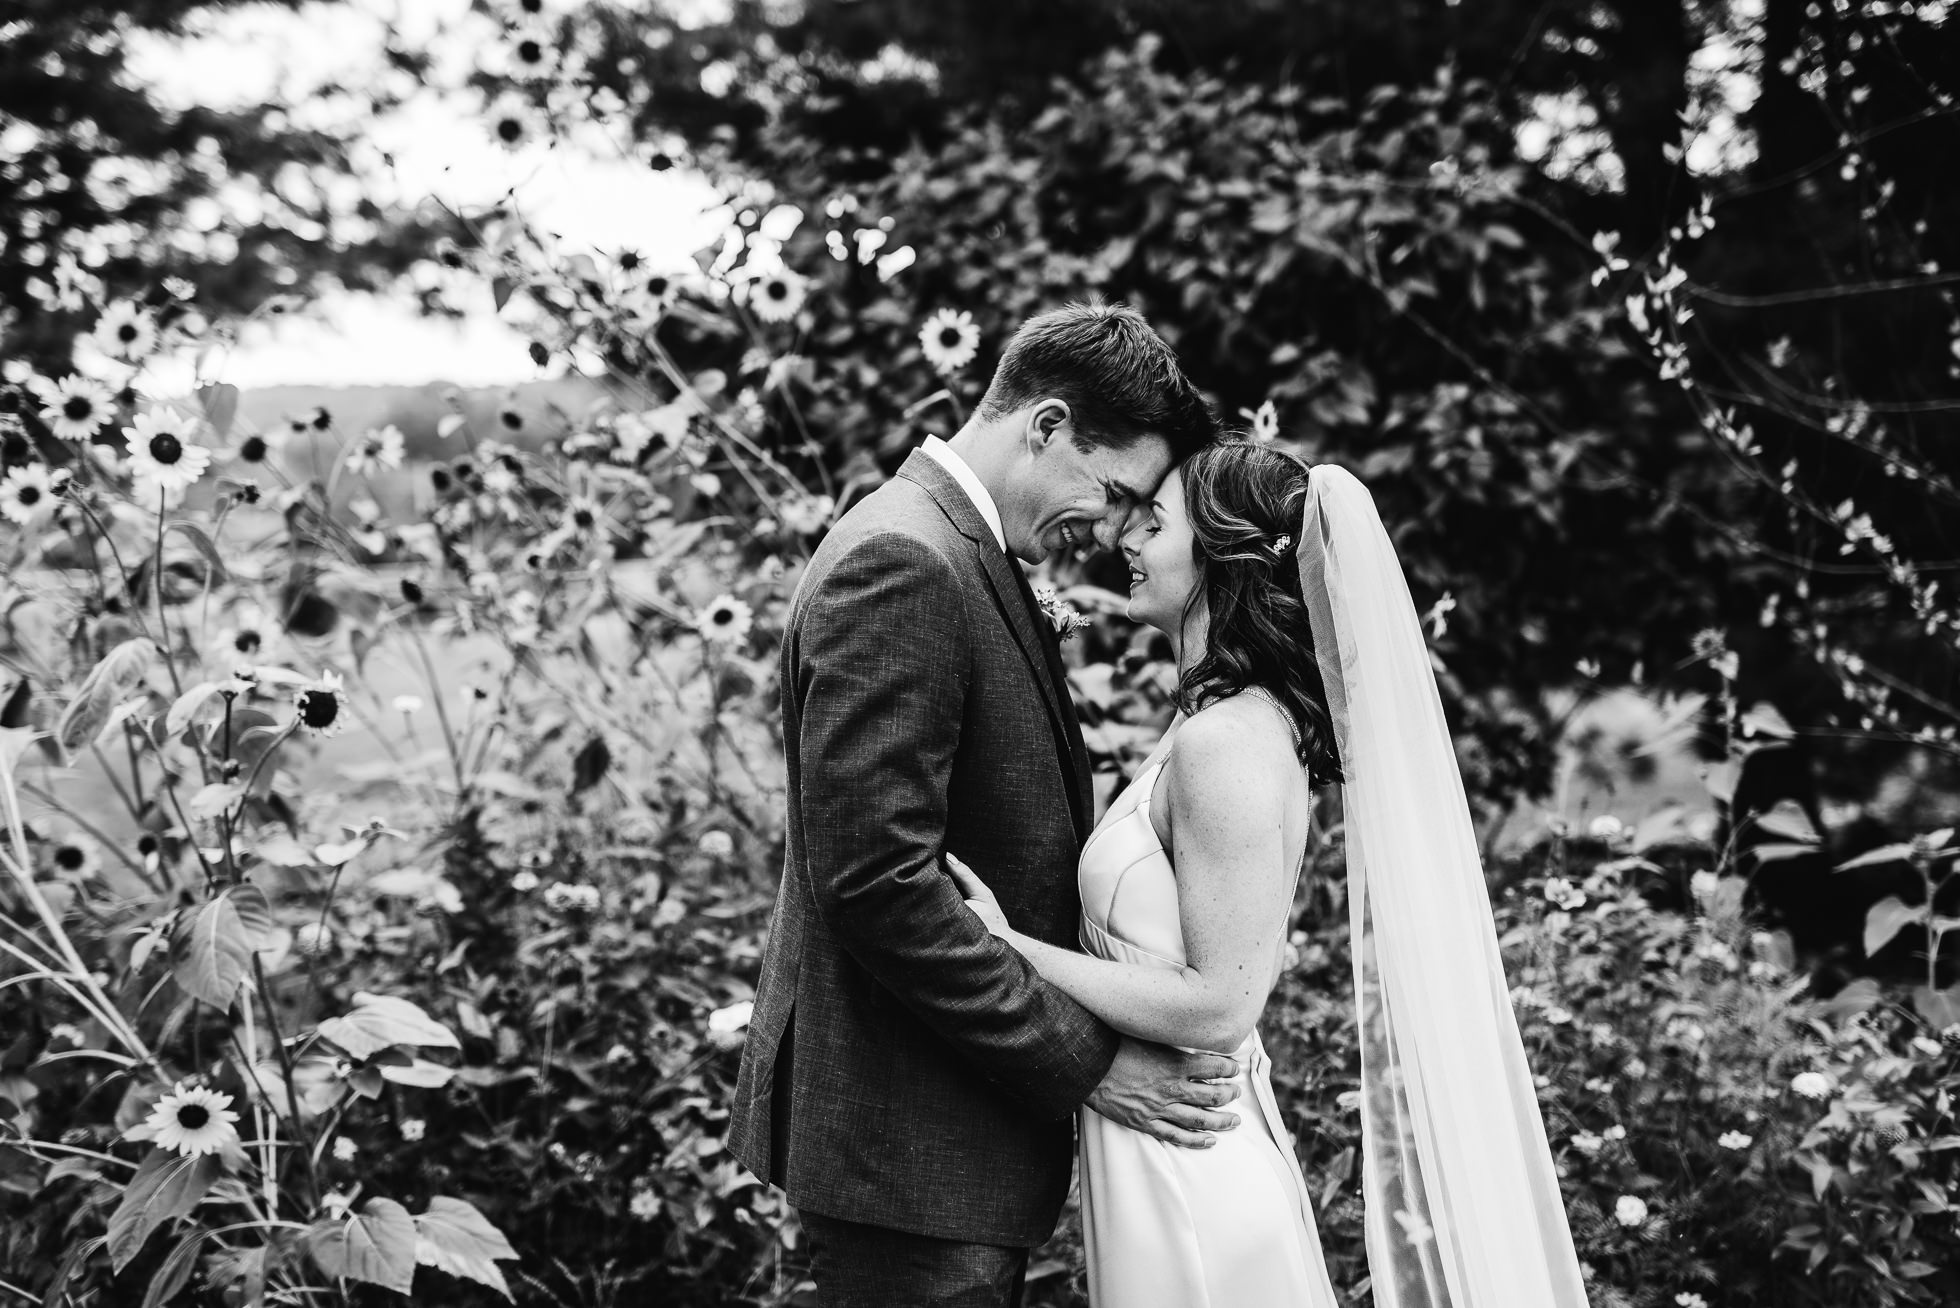 black and white wedding portraits by flowers at olde tater barn wedding in central bridge, ny photographed by traverse the tides